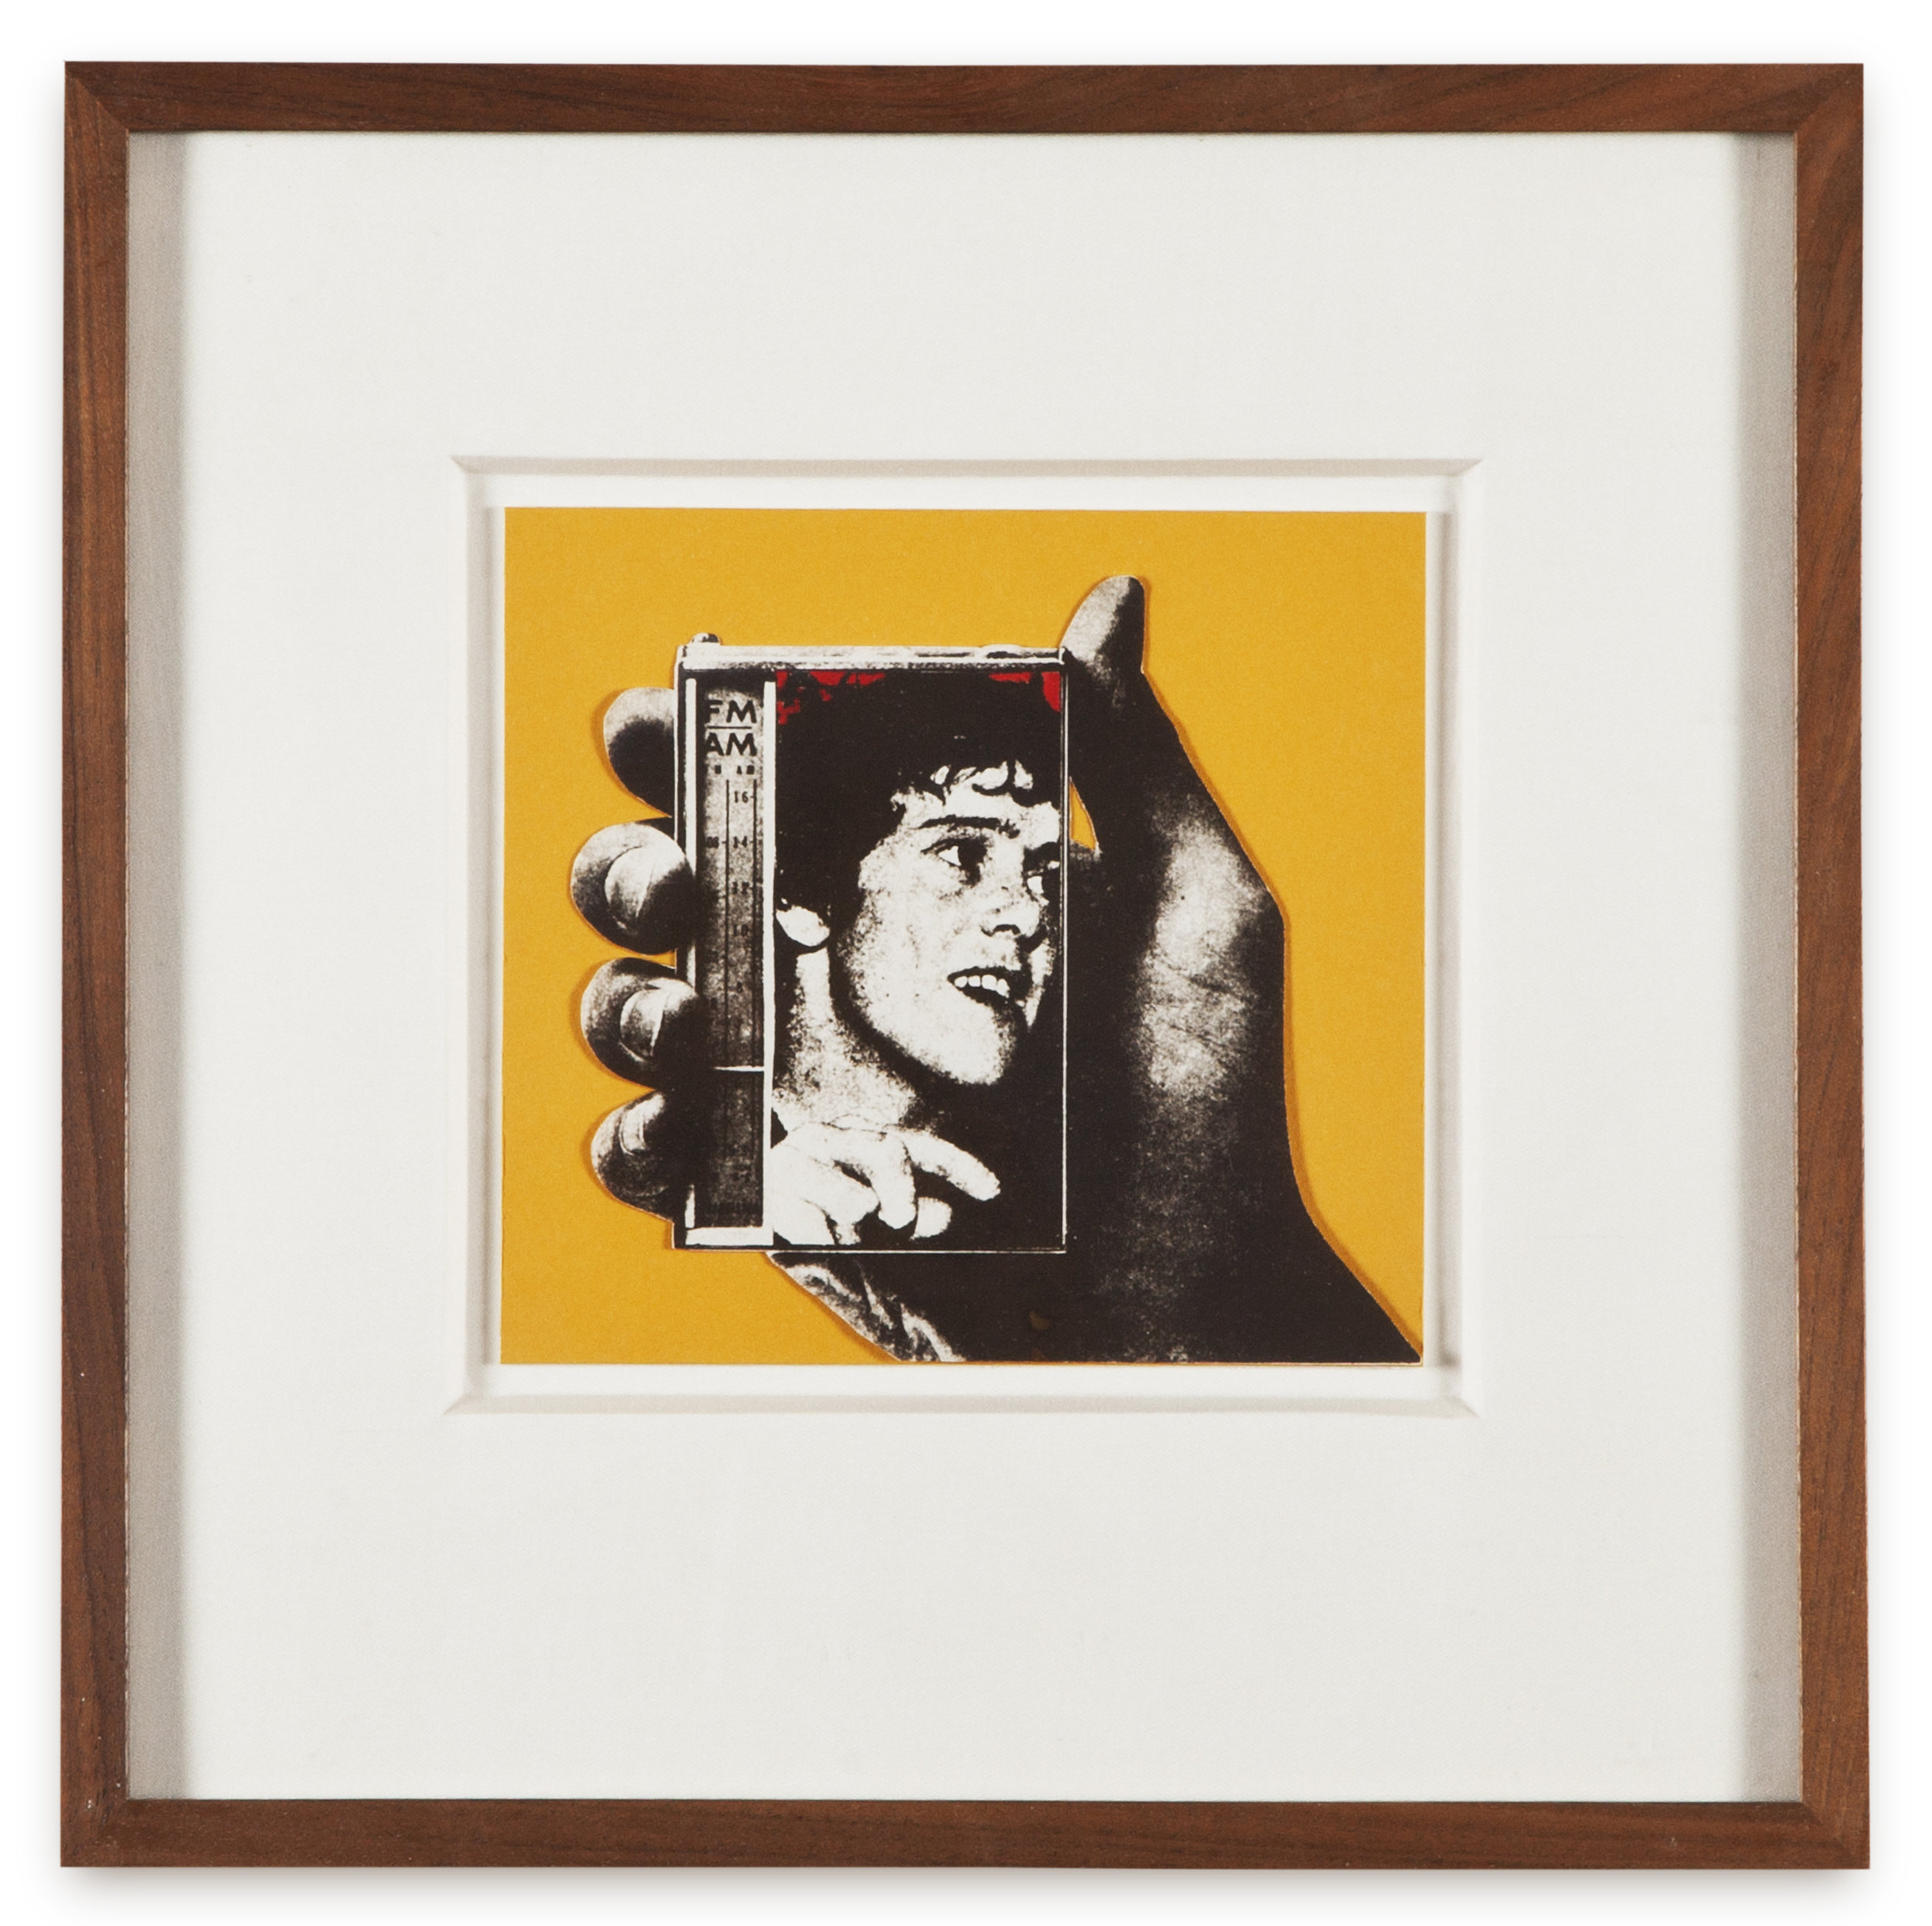 "Copy of ""Untitled #127"" , c. 1964-76, Verifax collage with acrylic, 6 x 6 1/2 inches, framed 12 x 12 1/2 inches"